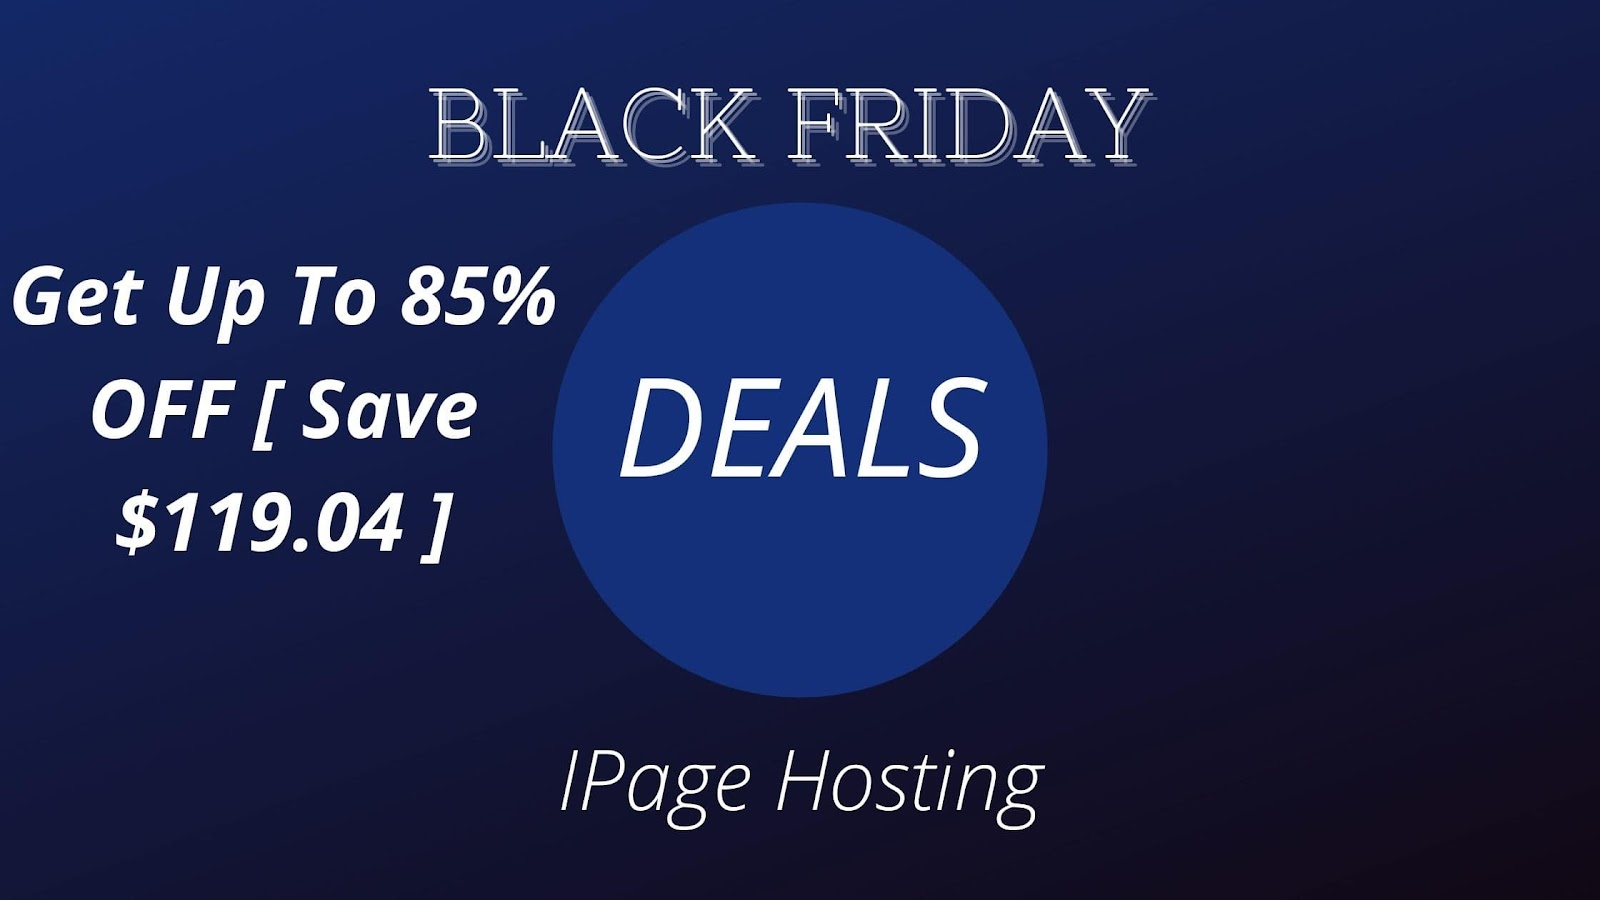 Ipage:Get Up To 85% OFF [ Save $119.04 ]